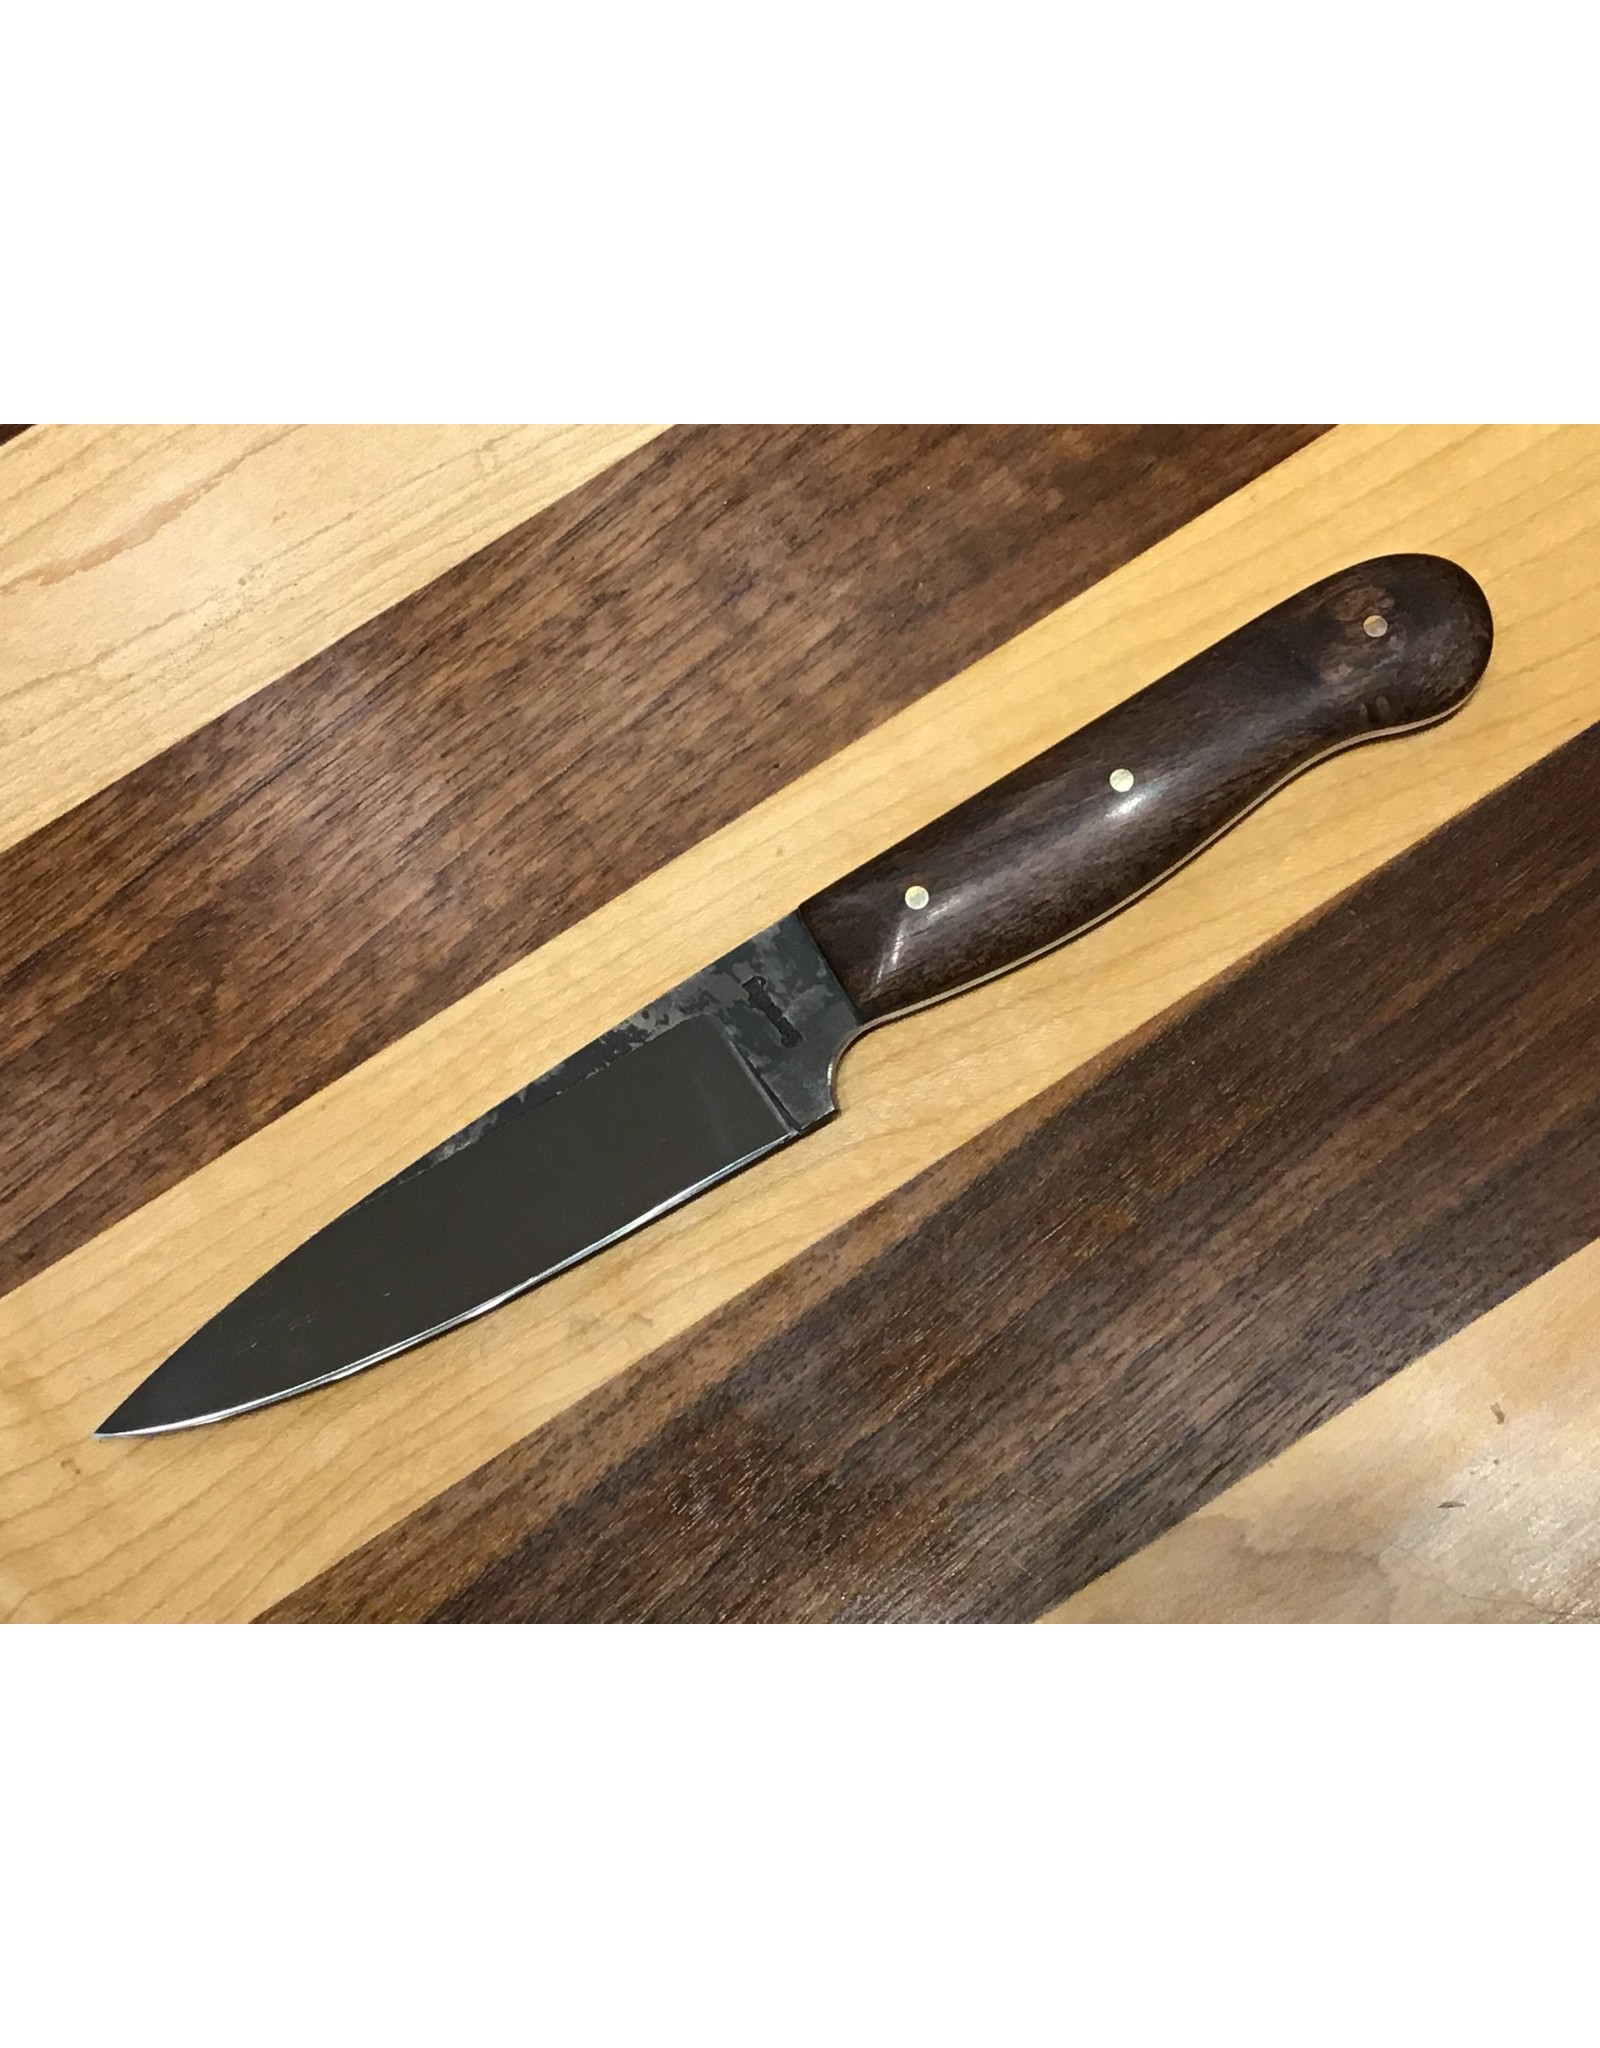 "Serenity 4 3/8"" Paring Knife in High Carbon Steel with Mesquite Handle"